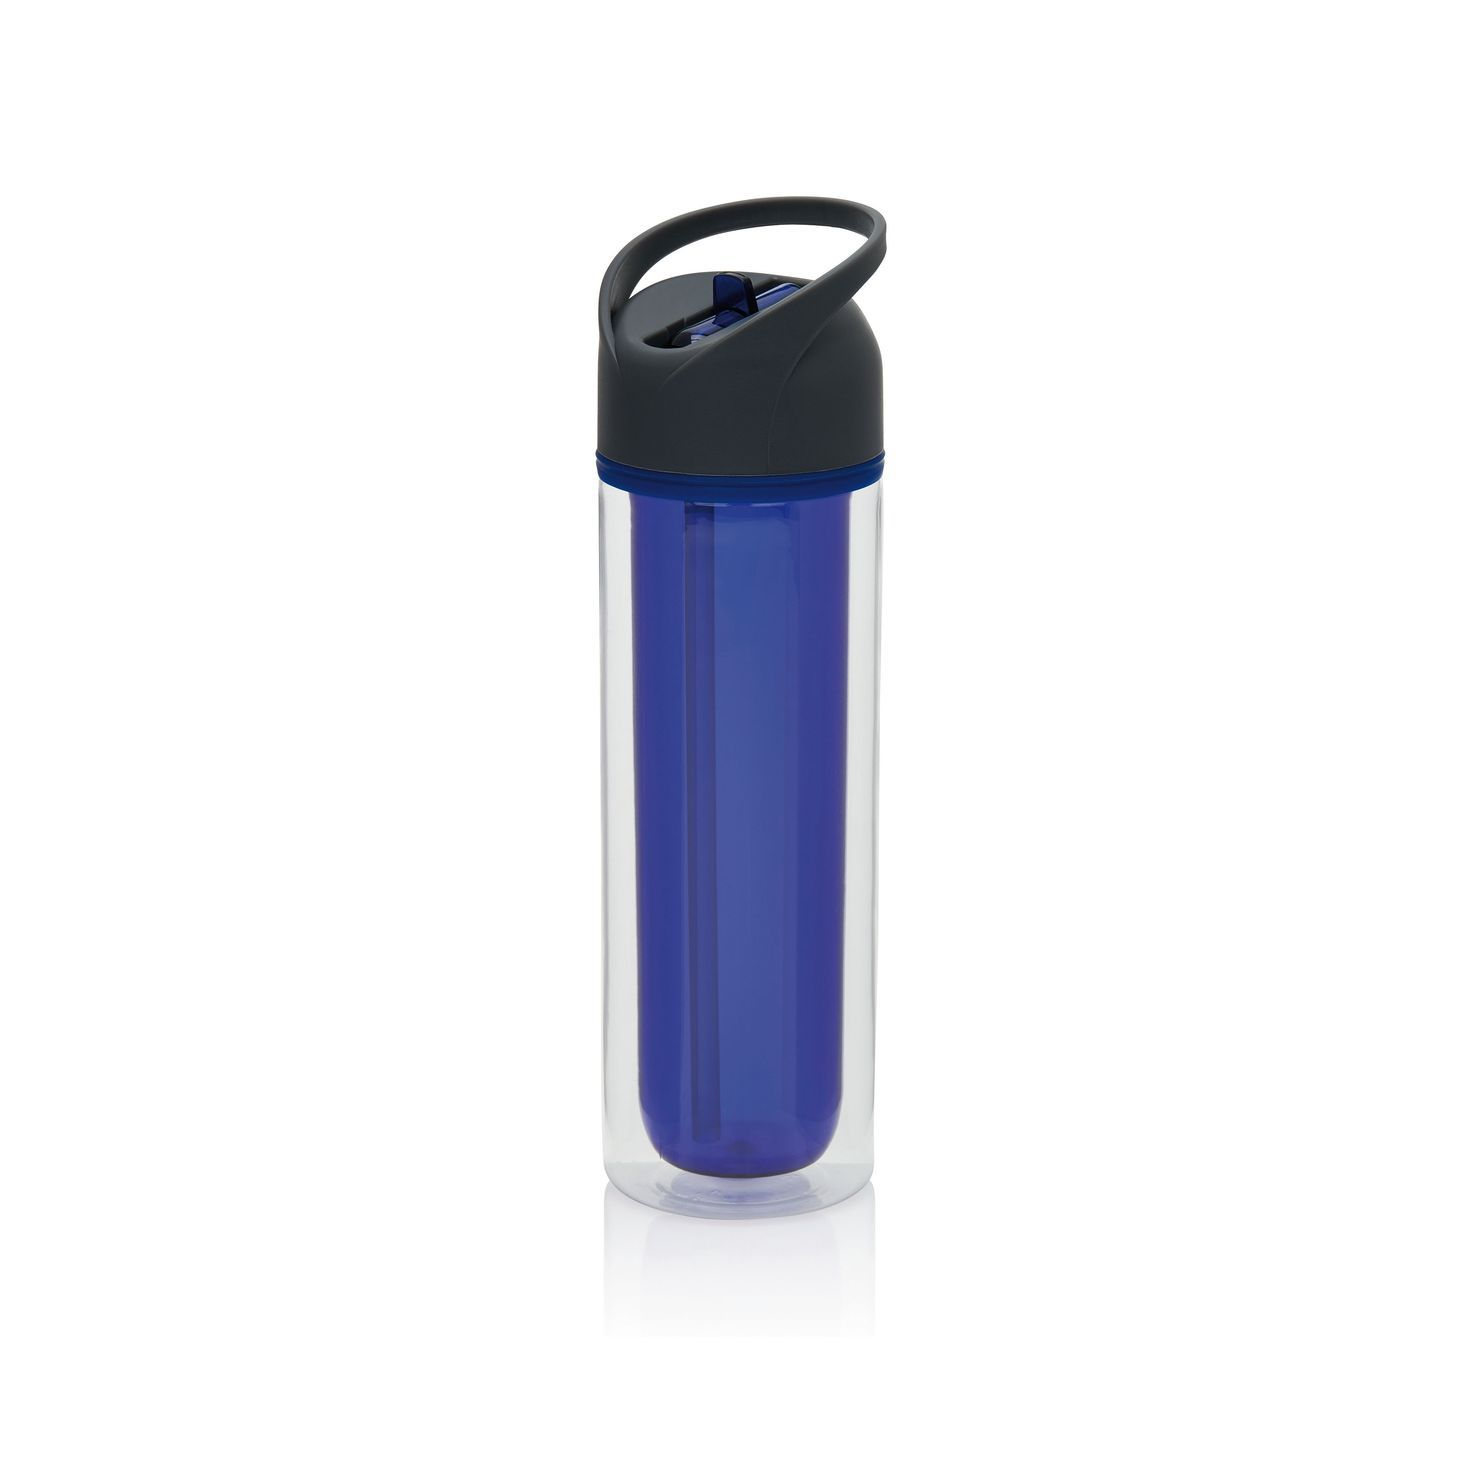 Blauwe Drinkfles | Dubbelwandig | 360 ml